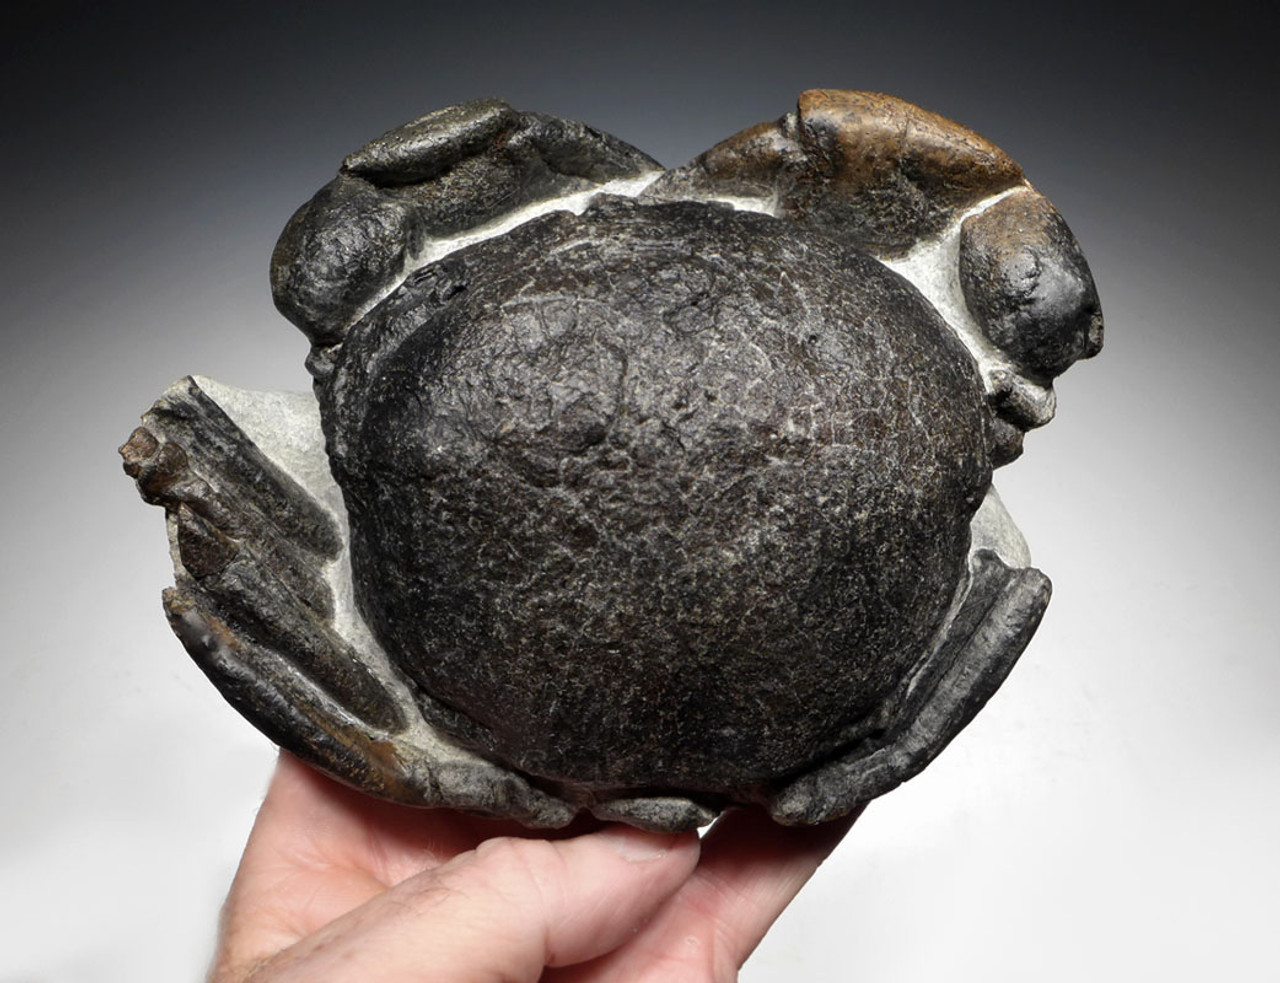 CRUS039 - LARGE FOSSIL STONE CRAB TUMIDOCARCINUS GIGANTEUS FROM THE MIOCENE OF NEW ZEALAND